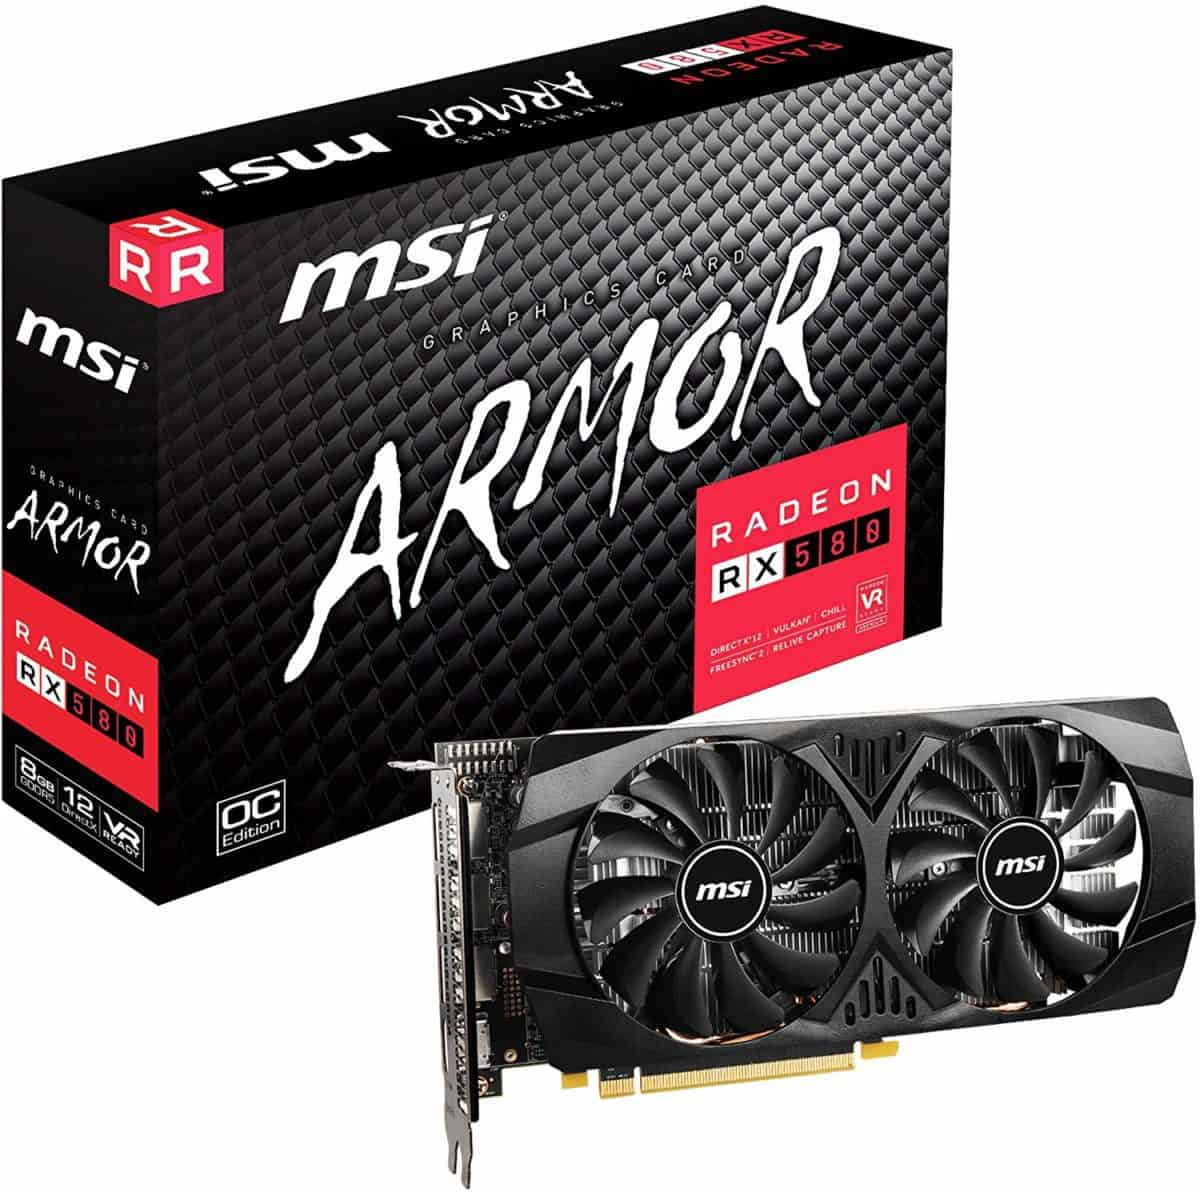 MSI Gaming RADEON RX 580 8GB